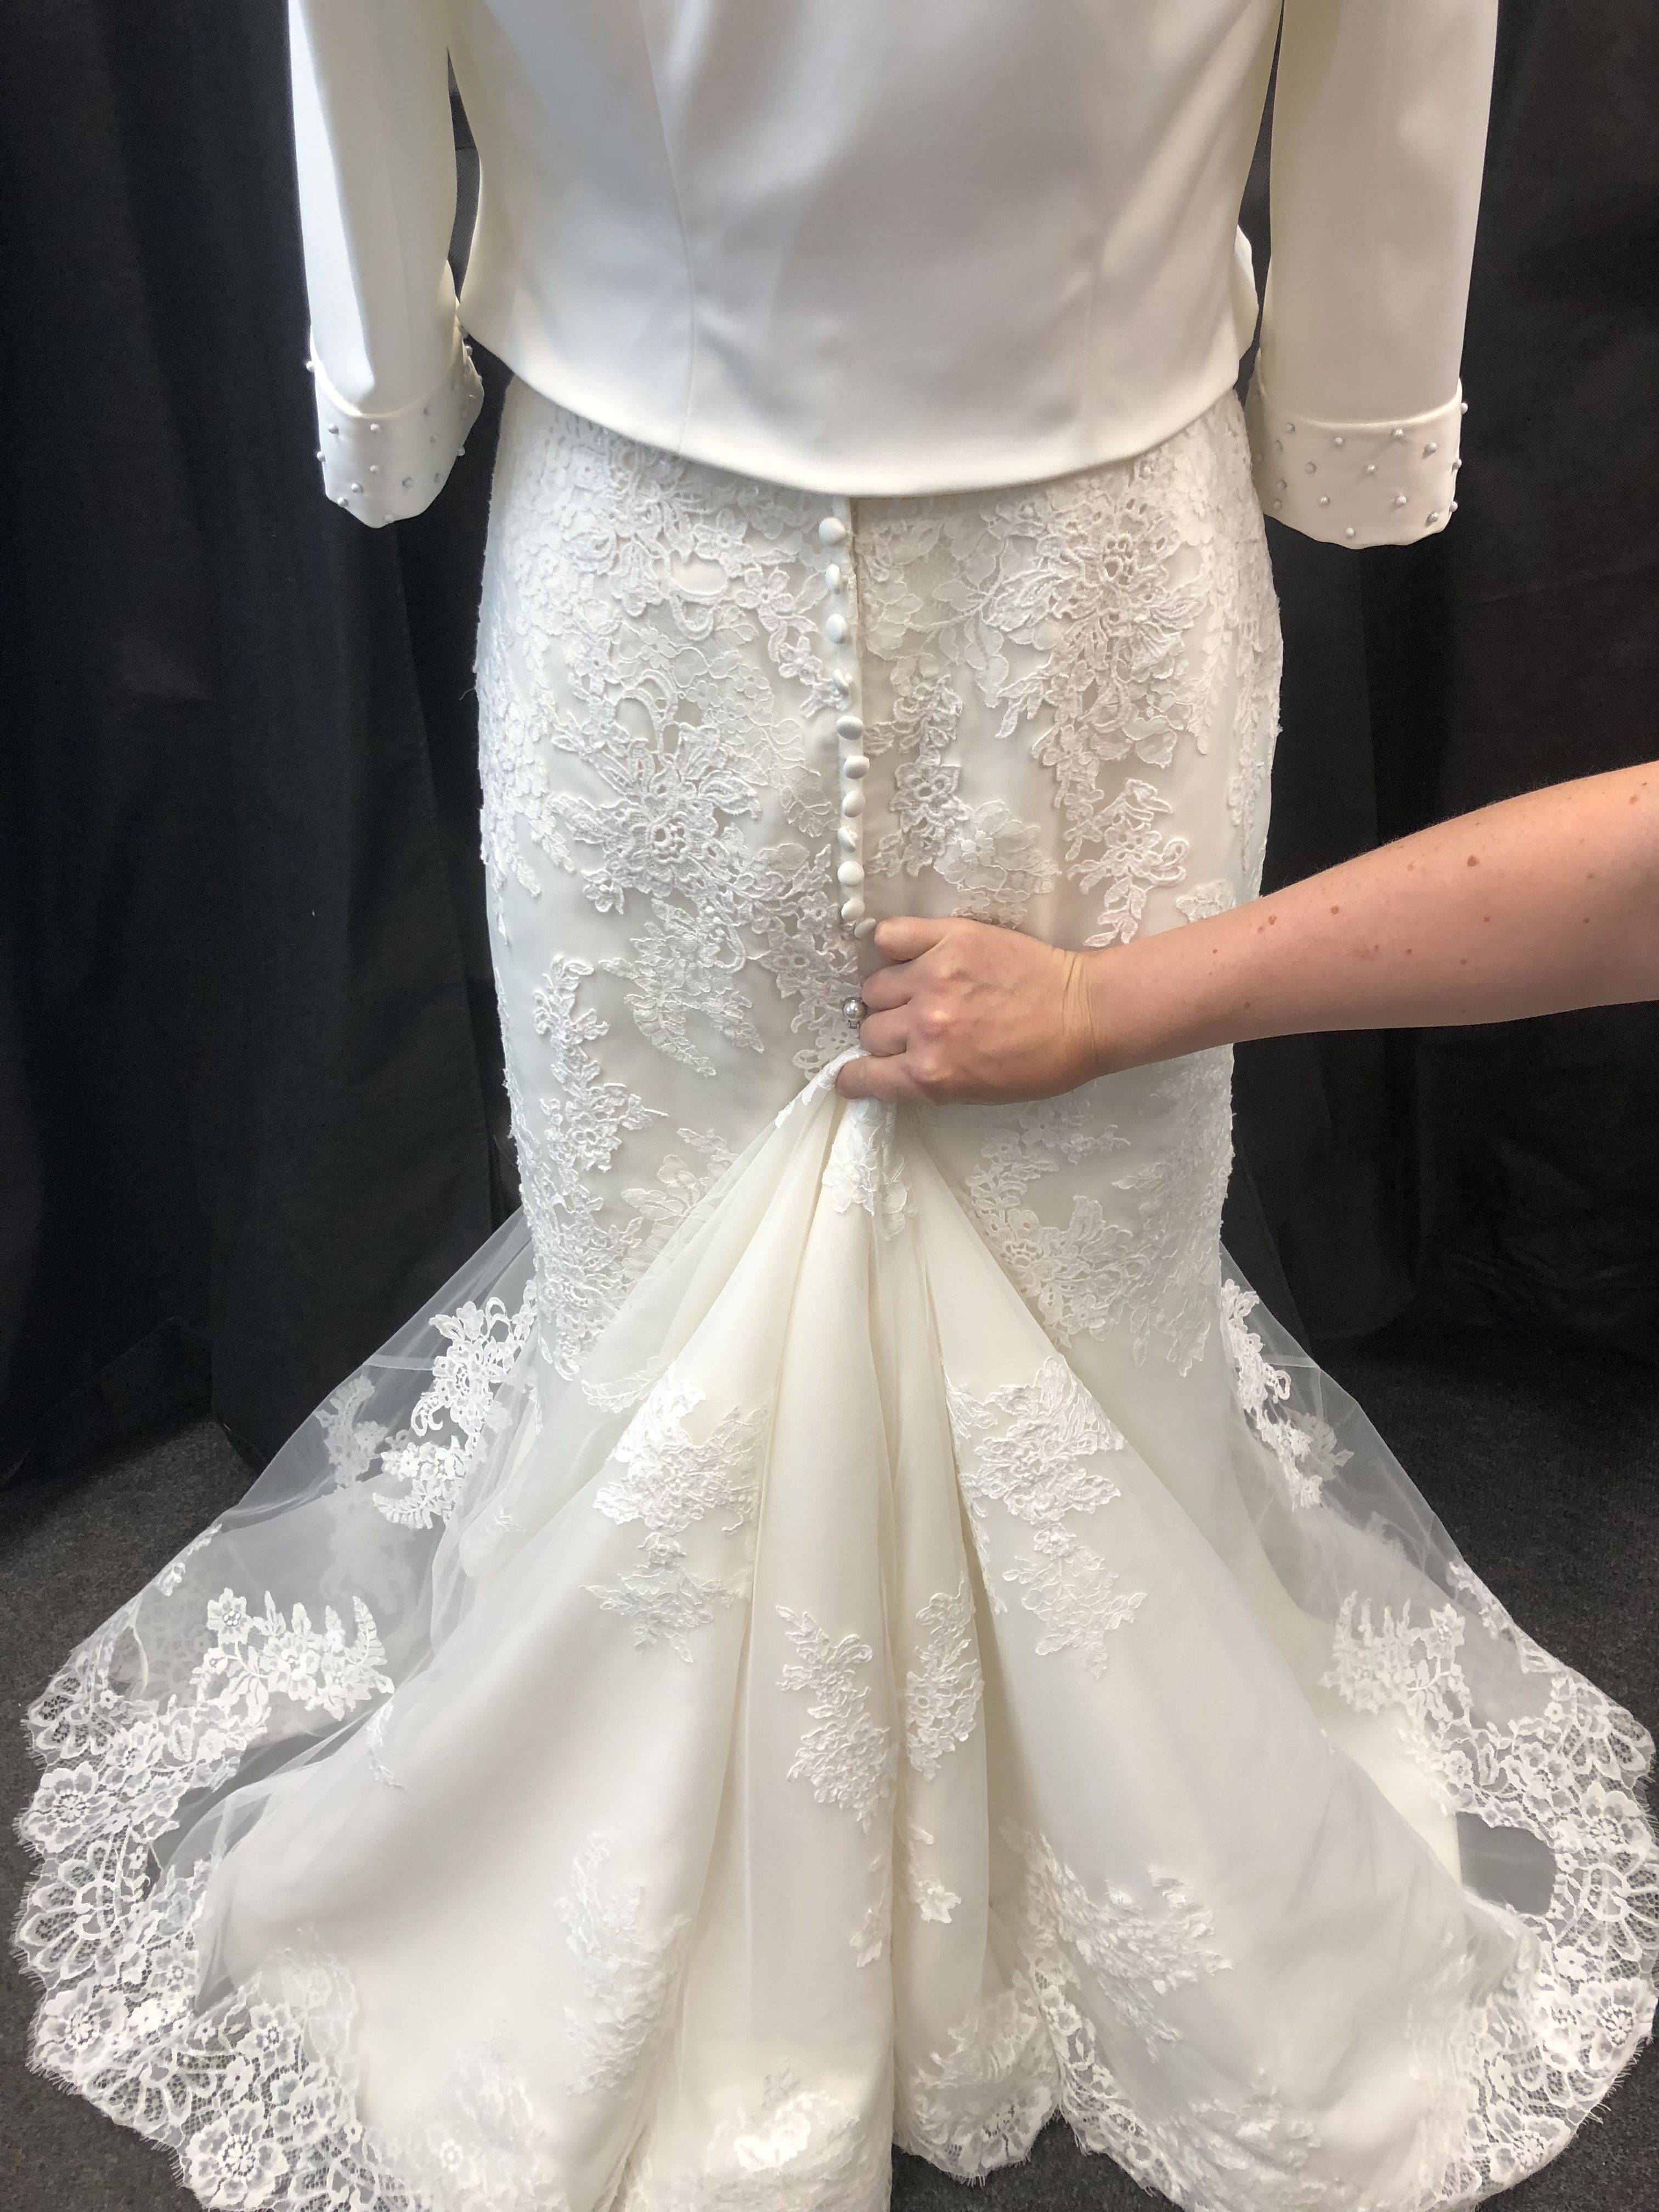 Work Out Where Is Best For Your Trainloop Before You Pin It Onto Your Dress No Worries If It S Not Quite Wedding Dress Train Dress Train Amazing Wedding Dress